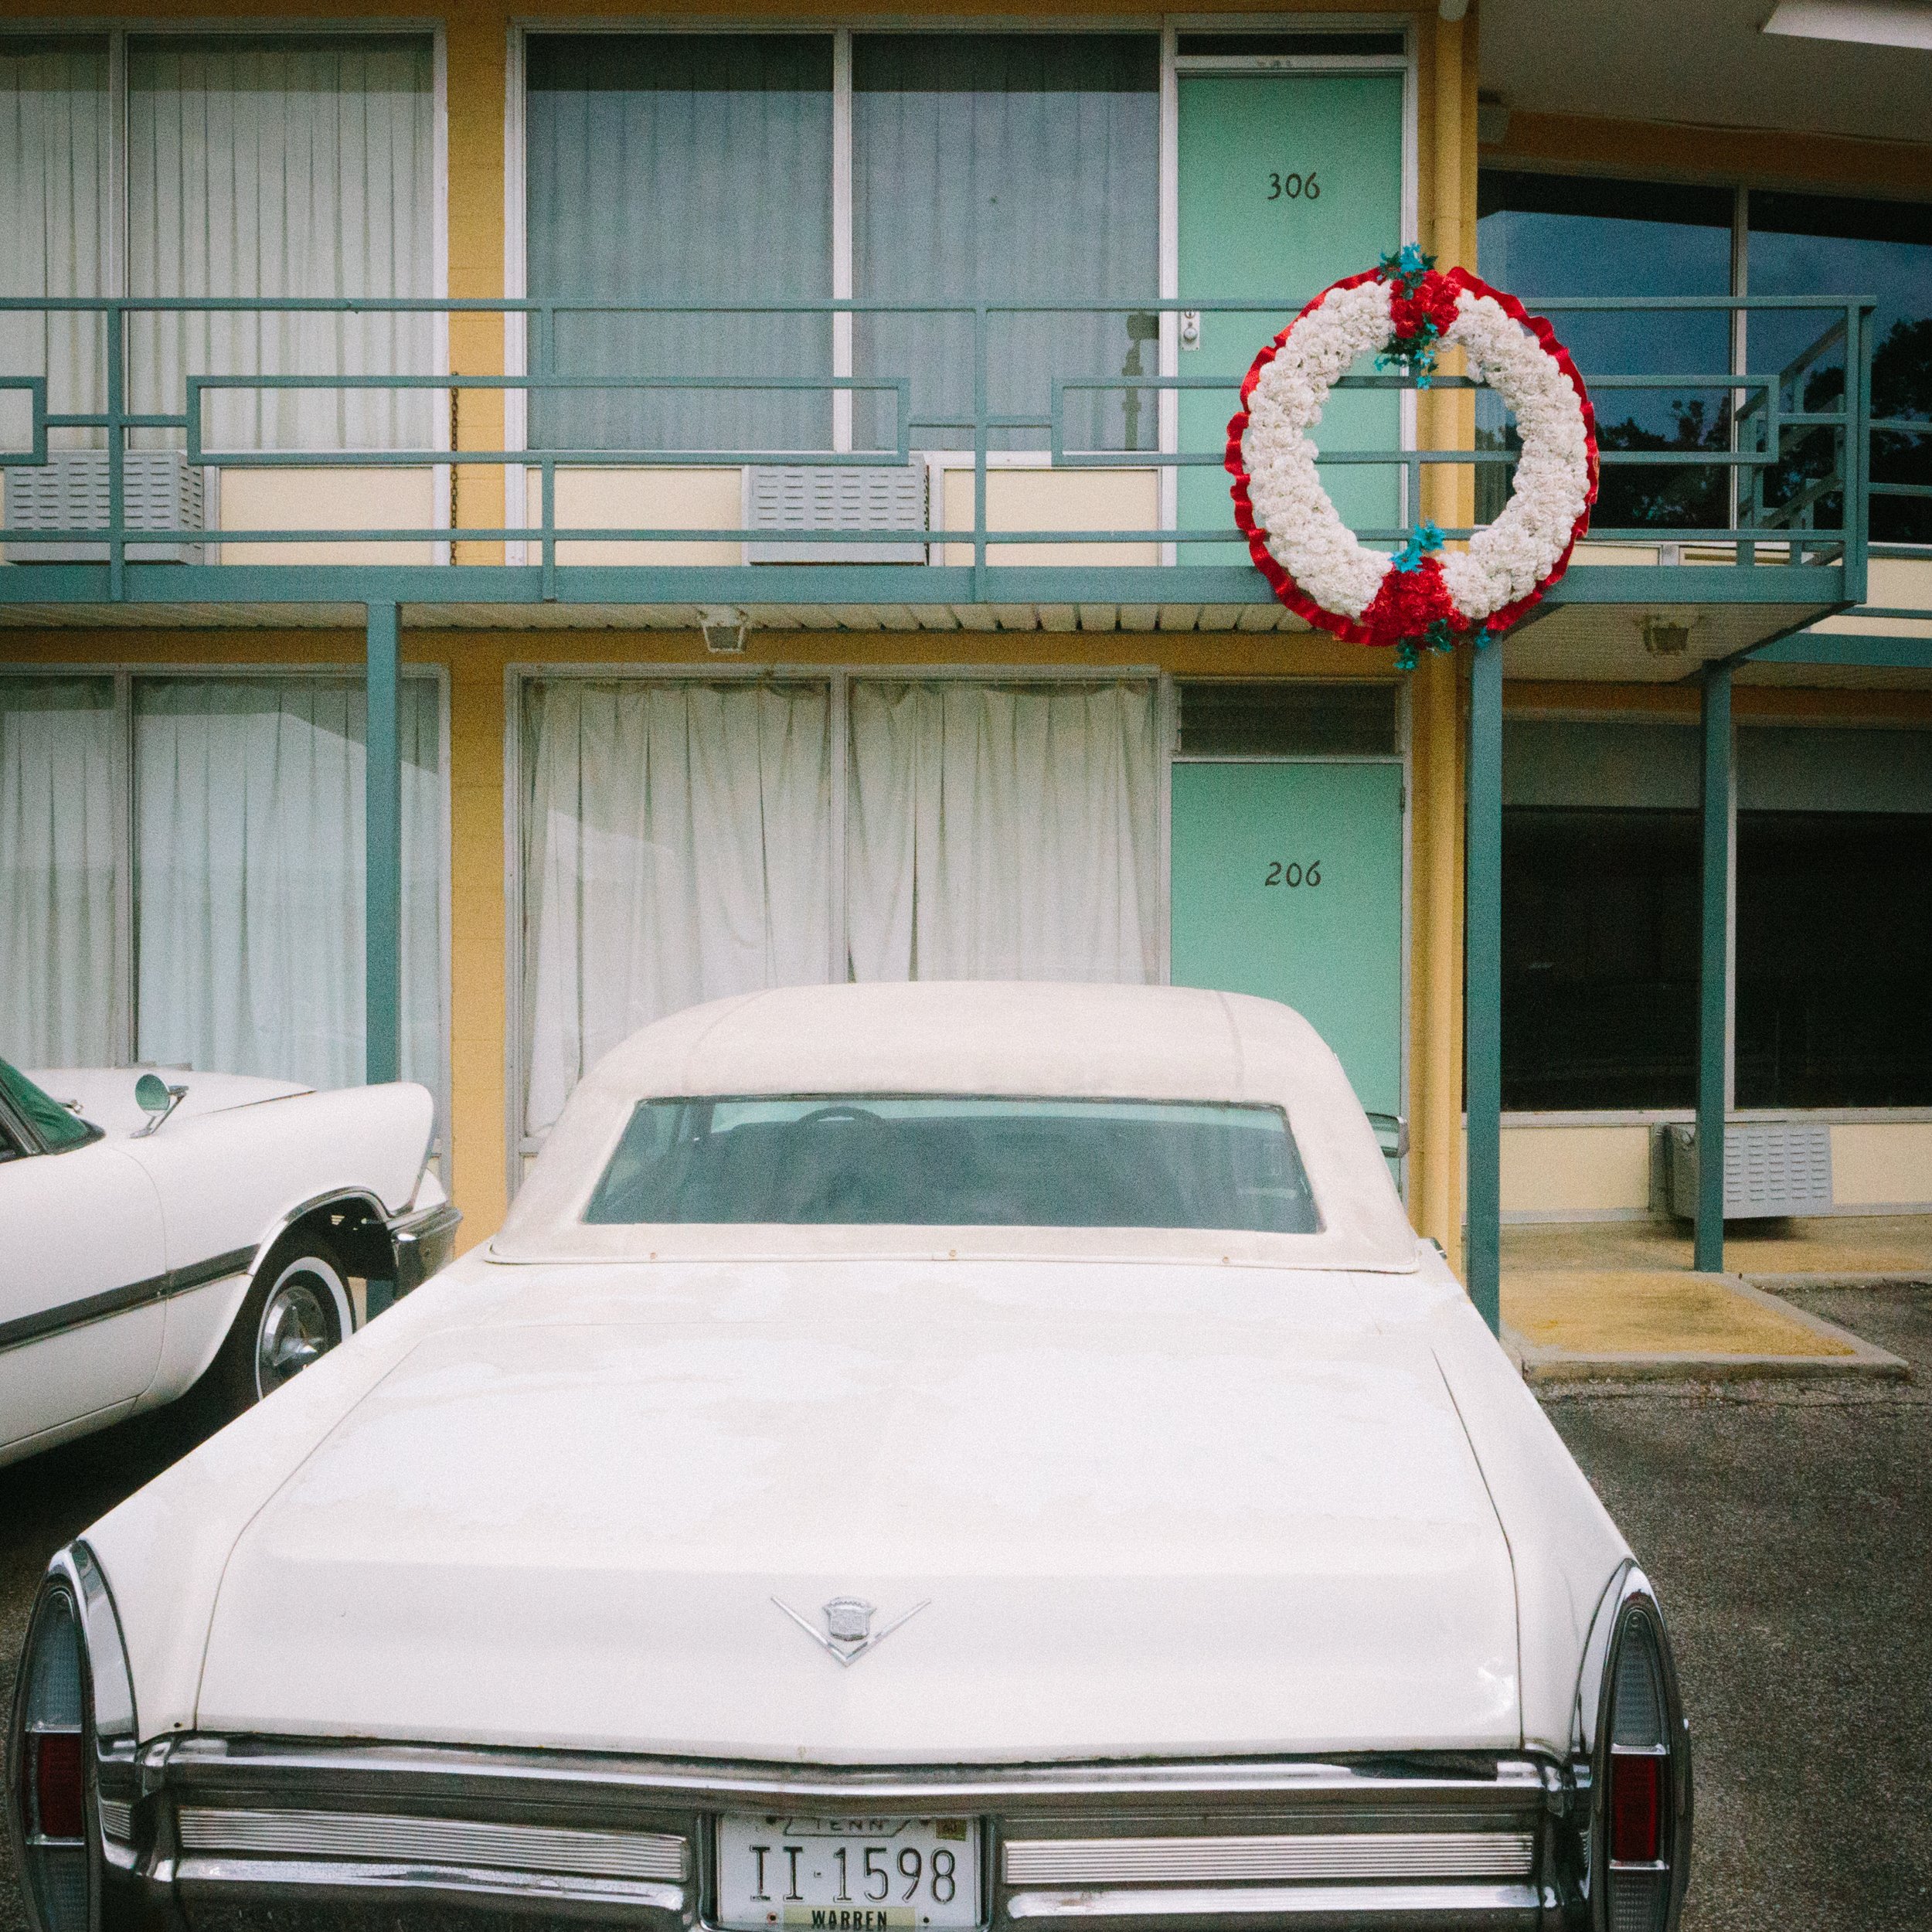 Room 506, The Lorraine Motel